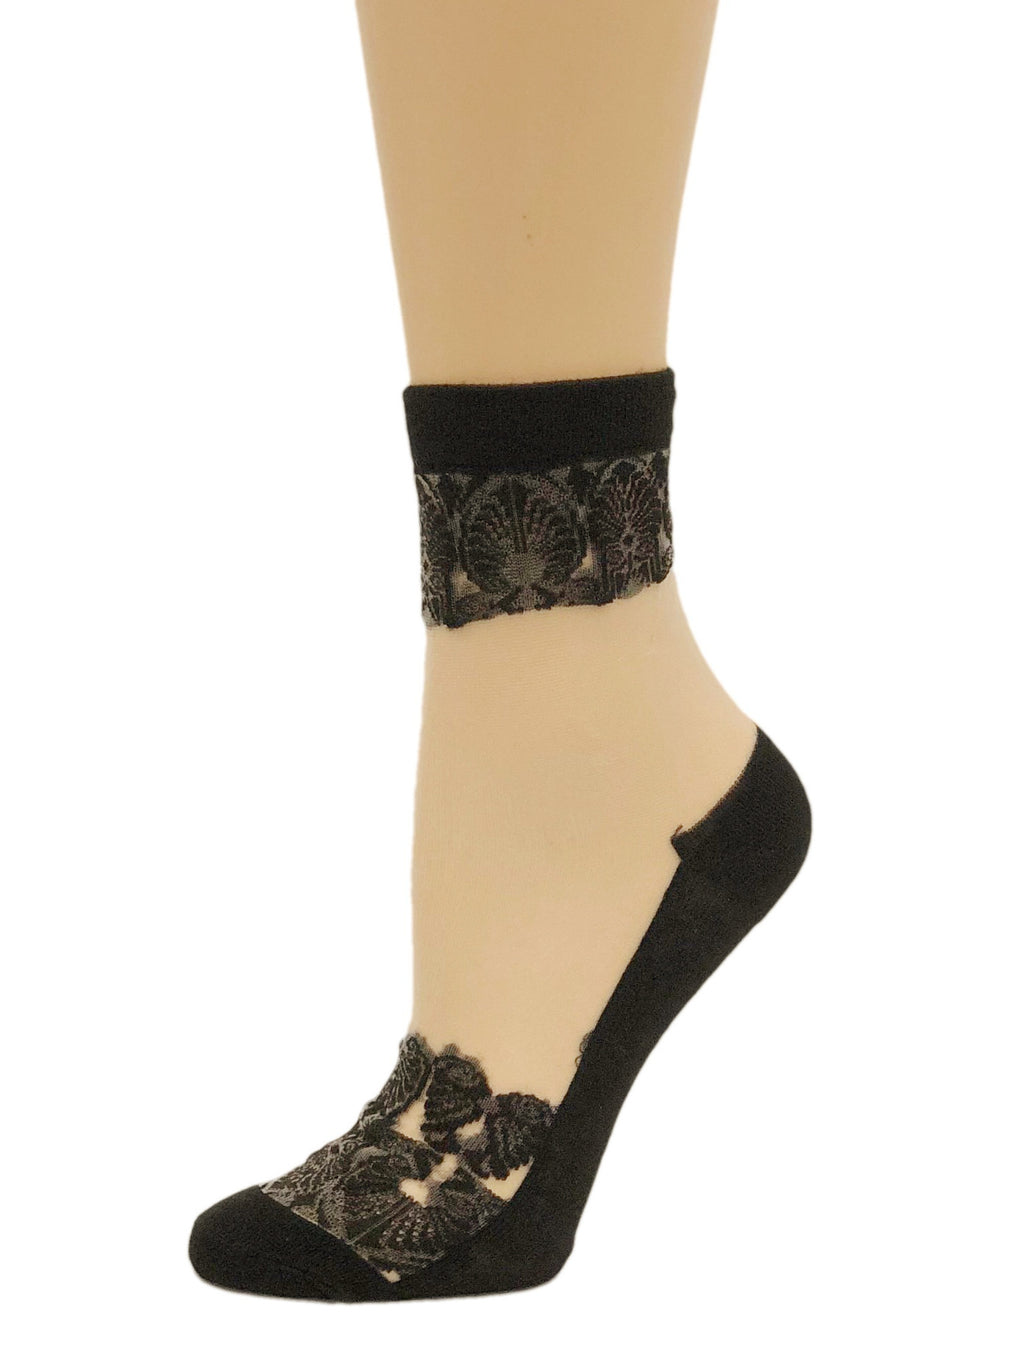 Dashing Black Sheer Socks - Global Trendz Fashion®